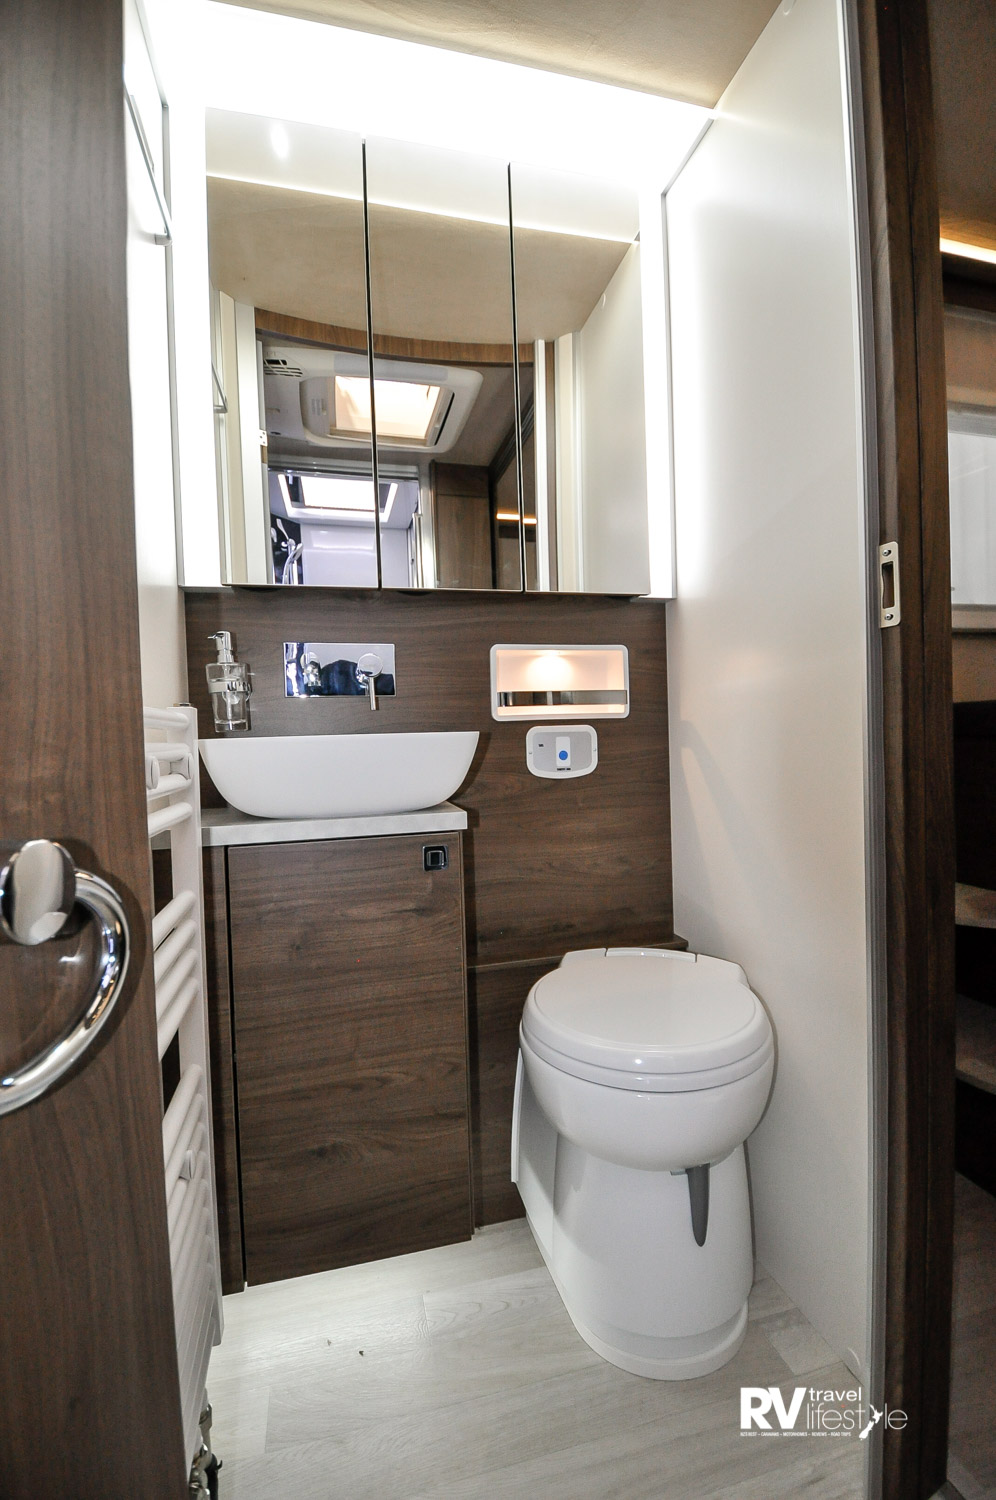 A well-lit en-suite toilet. On the left wall a radiator heater, ceramic cassette electric flush toilet. The vanity has storage underneath; the mirrored cabinet opens to offer multiple storage shelves. Check out the tap on the wall, the inset lit storage shelf behind the toilet. A fixed soap holder is so handy